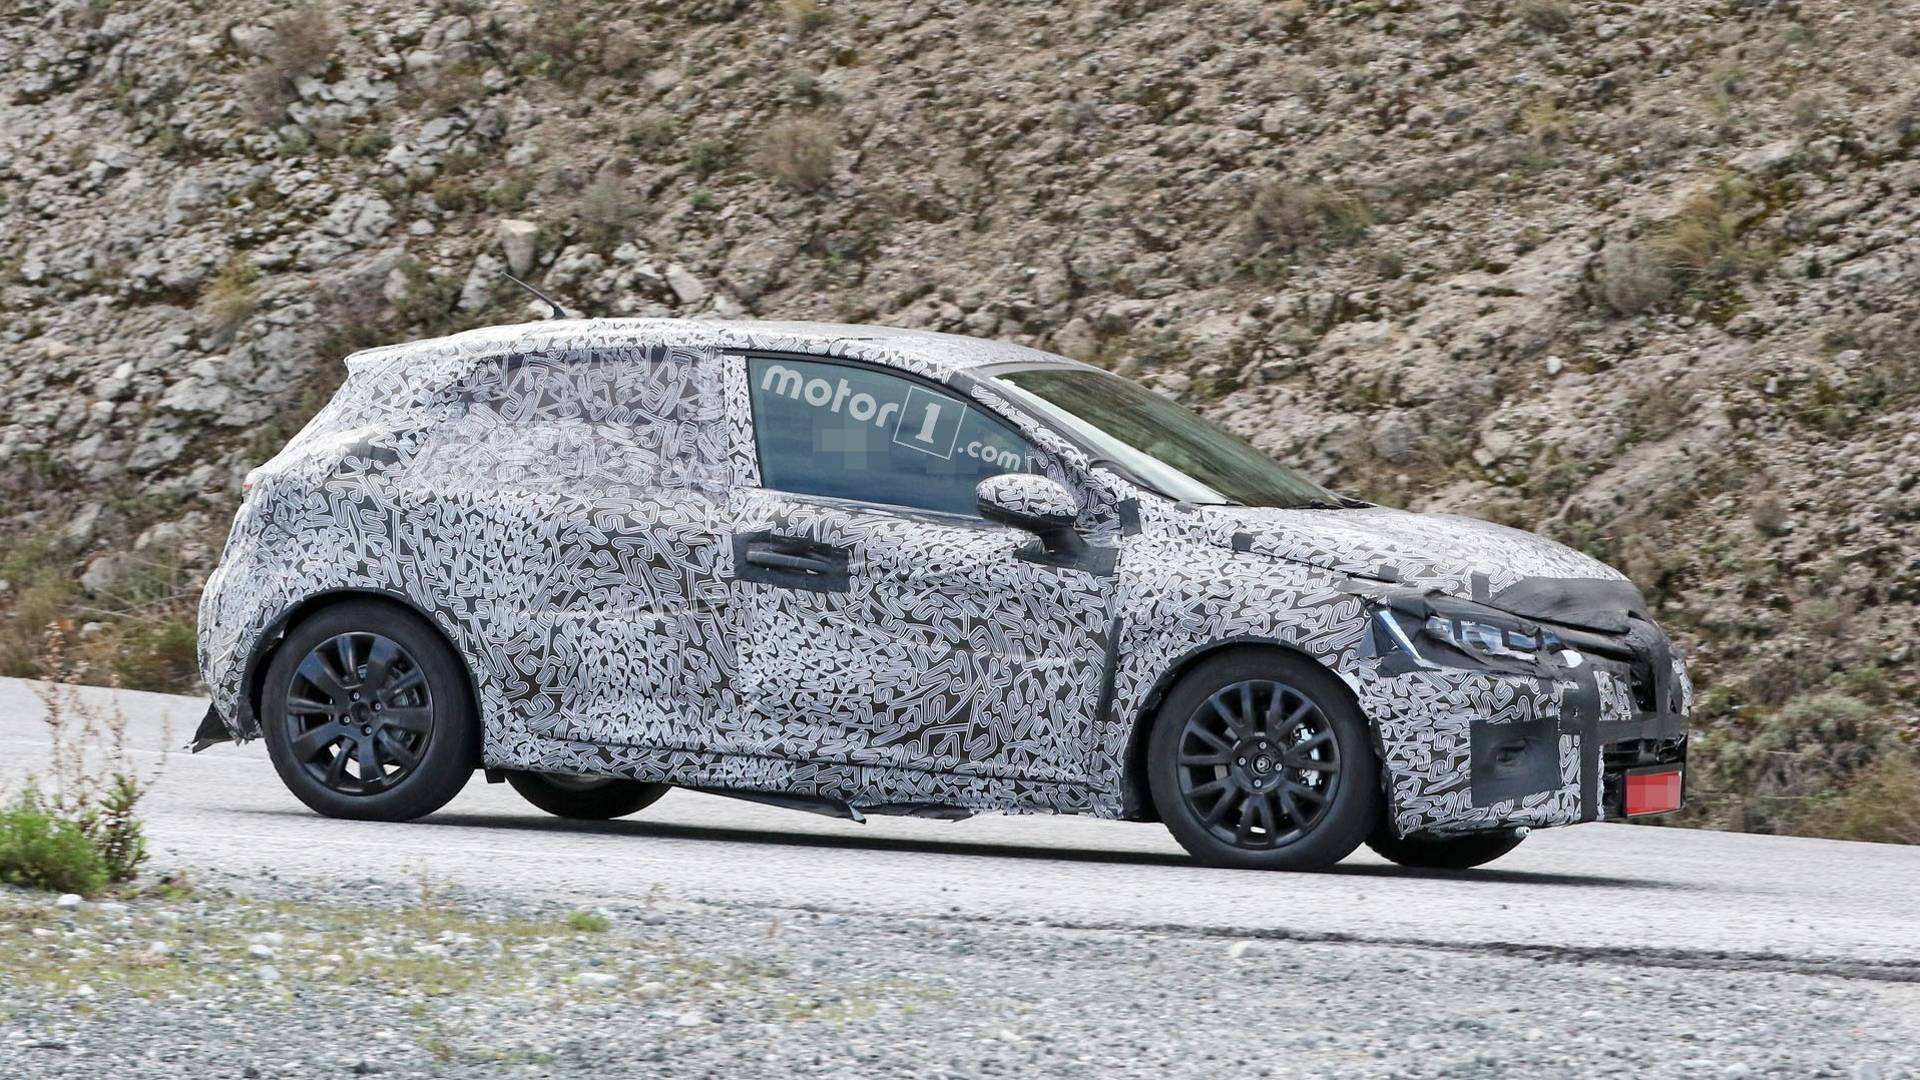 37 All New Renault Clio 2019 Spy Picture